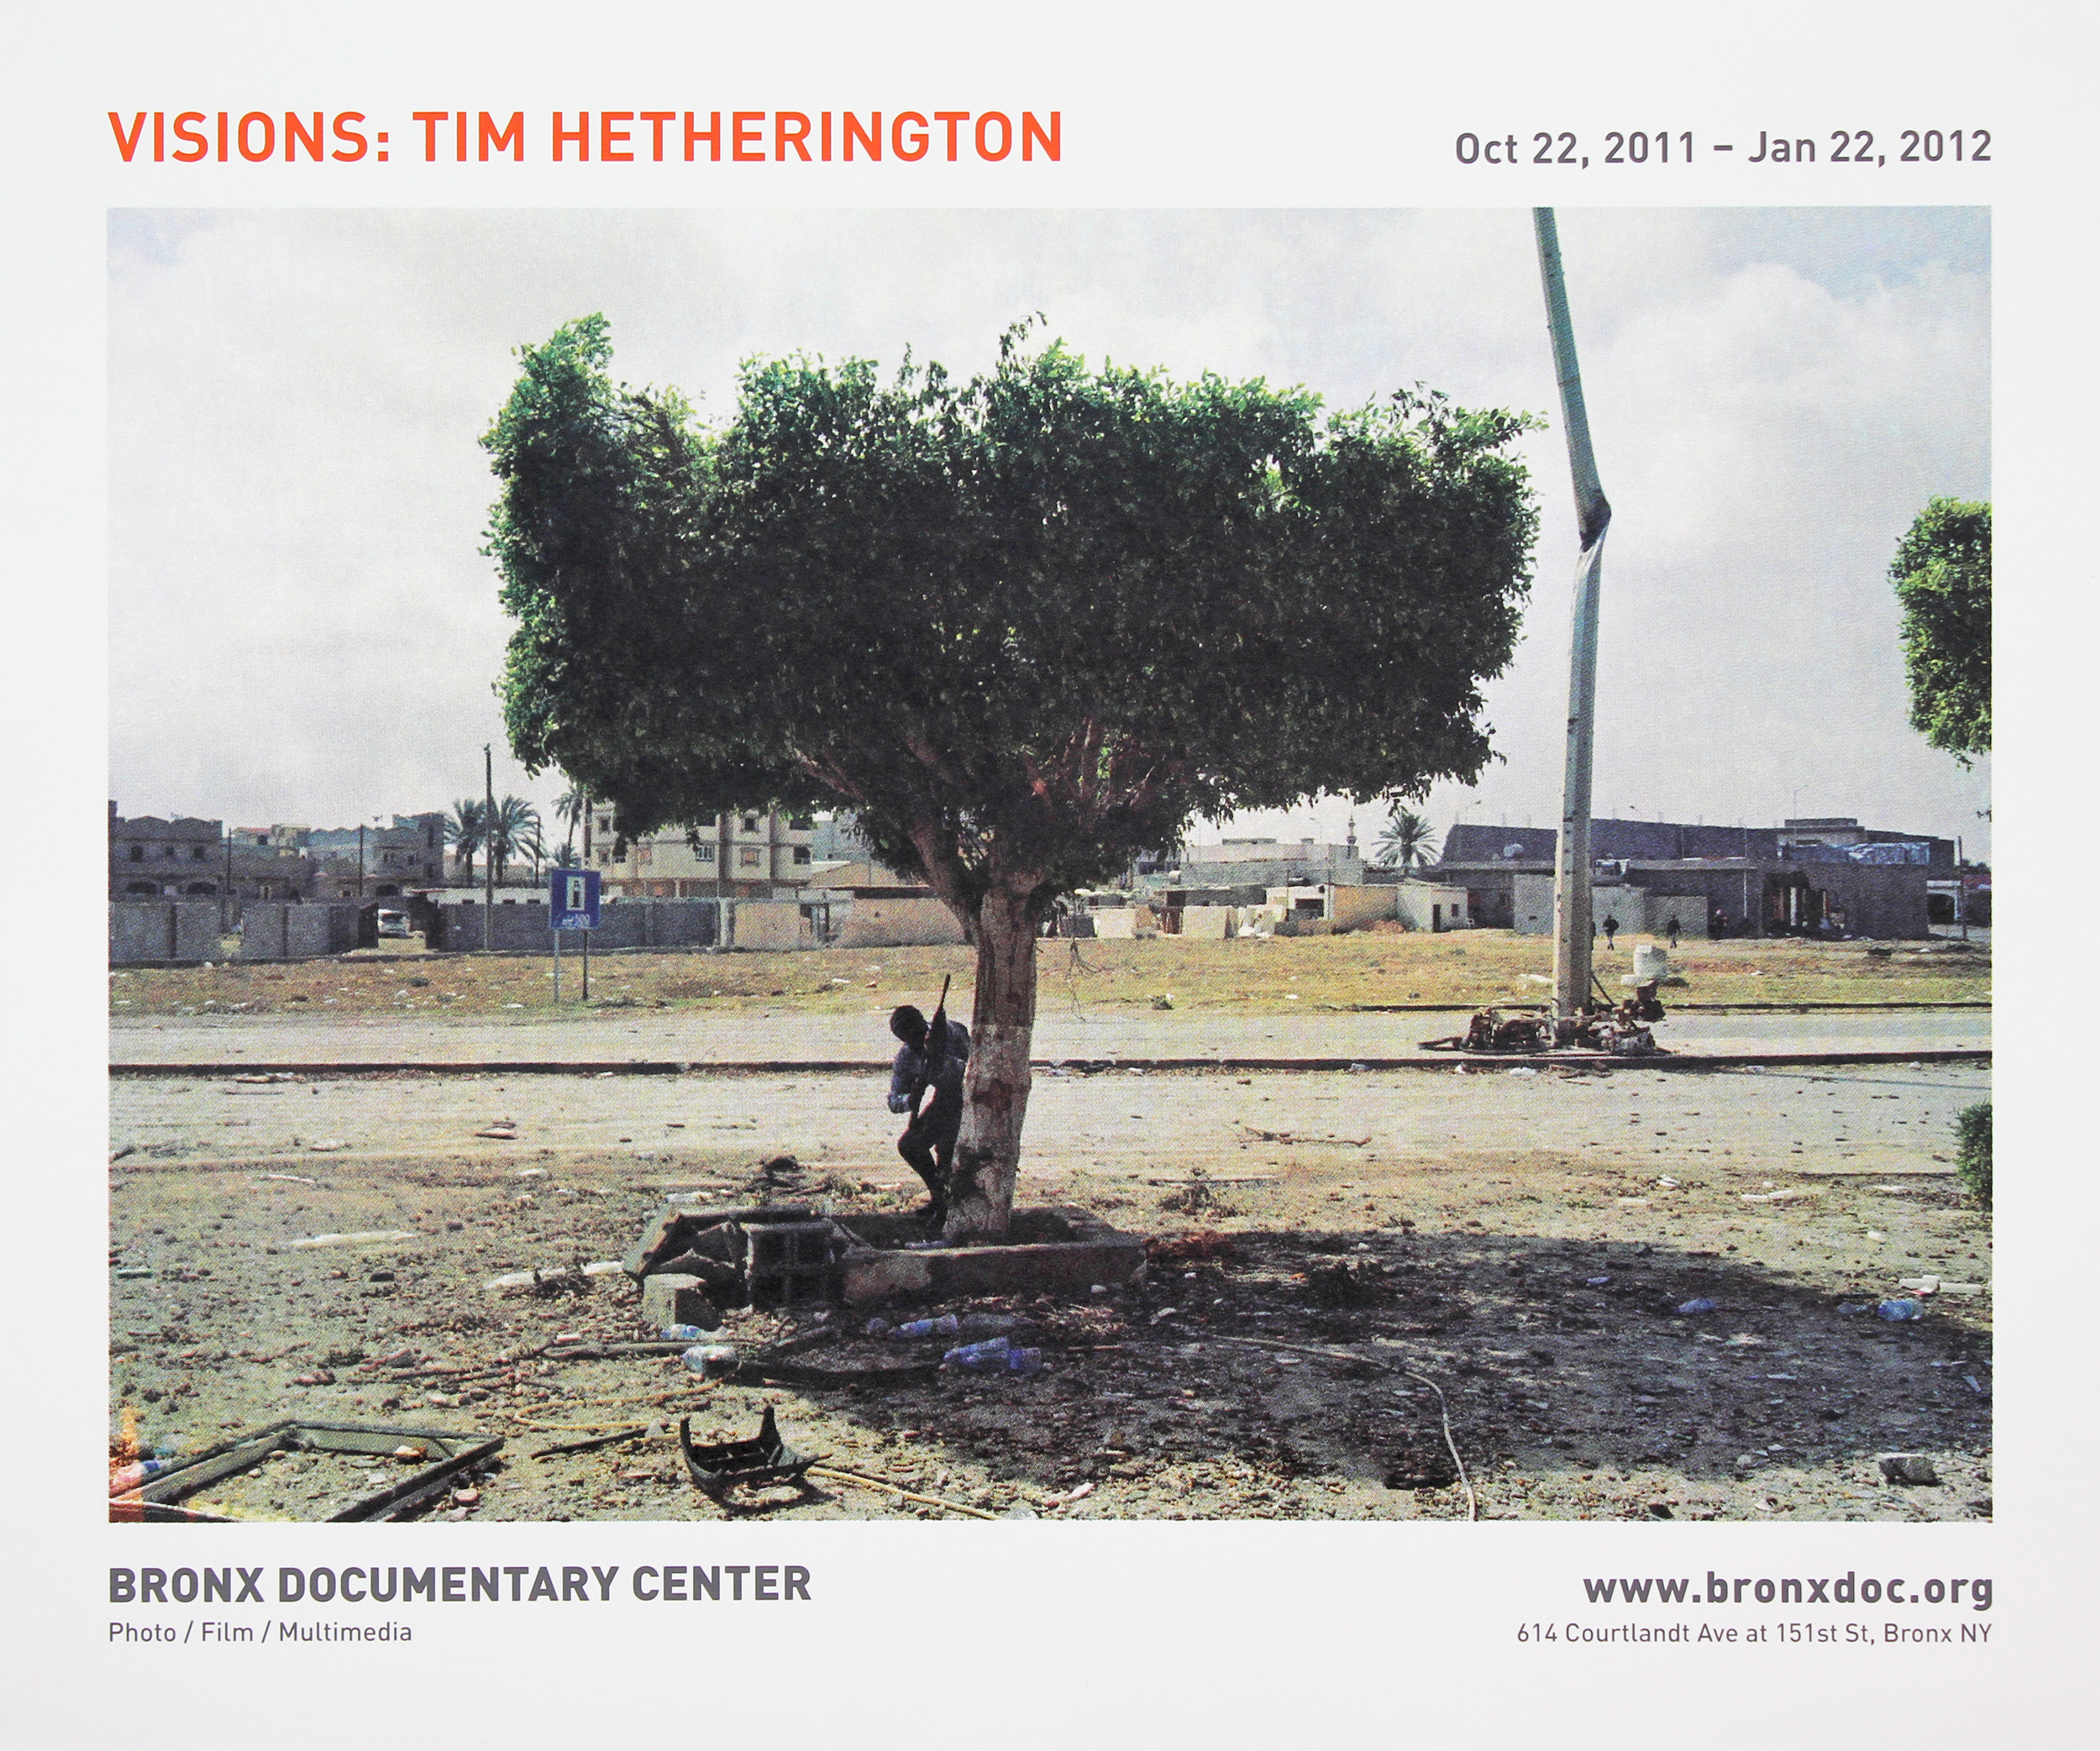 Bronx Doc Center - Visions: Tim Hetherington